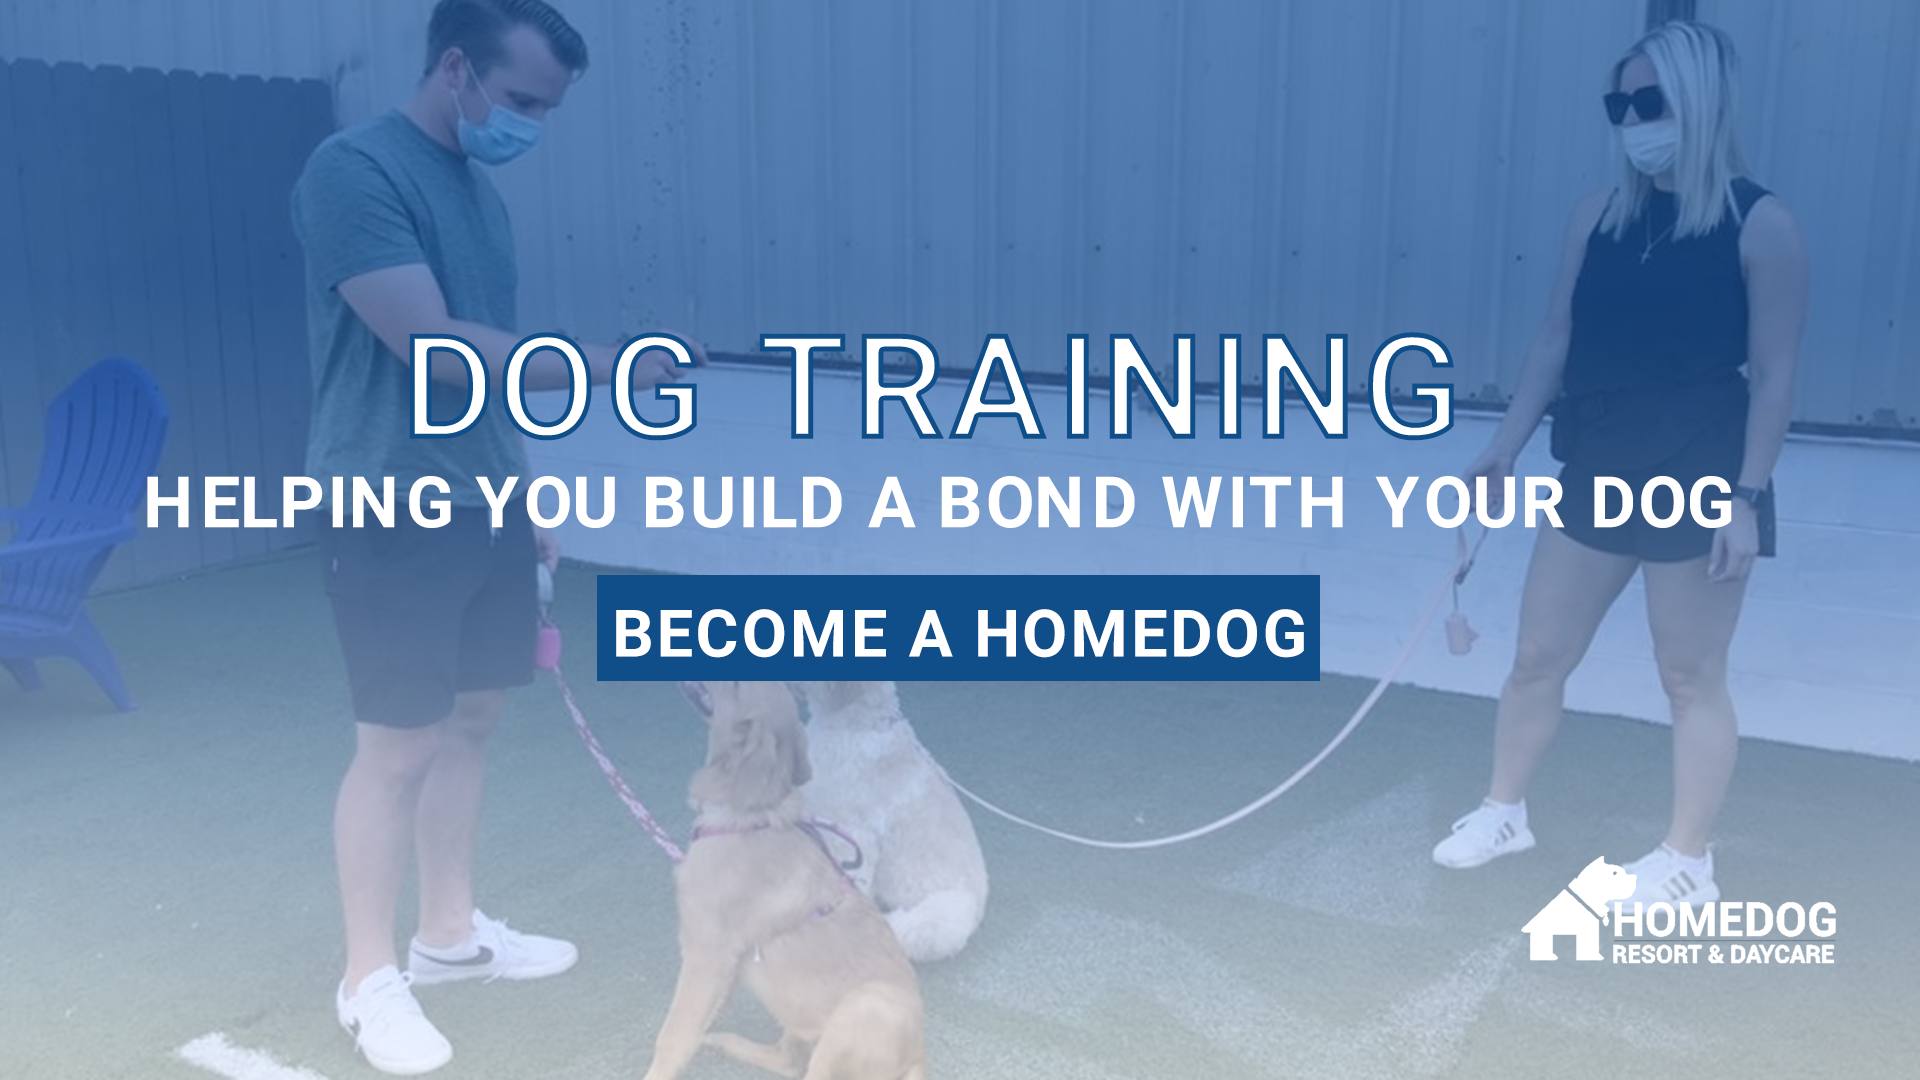 dog training class at Homedog Resort & Daycare in downtown Columbus, Ohio